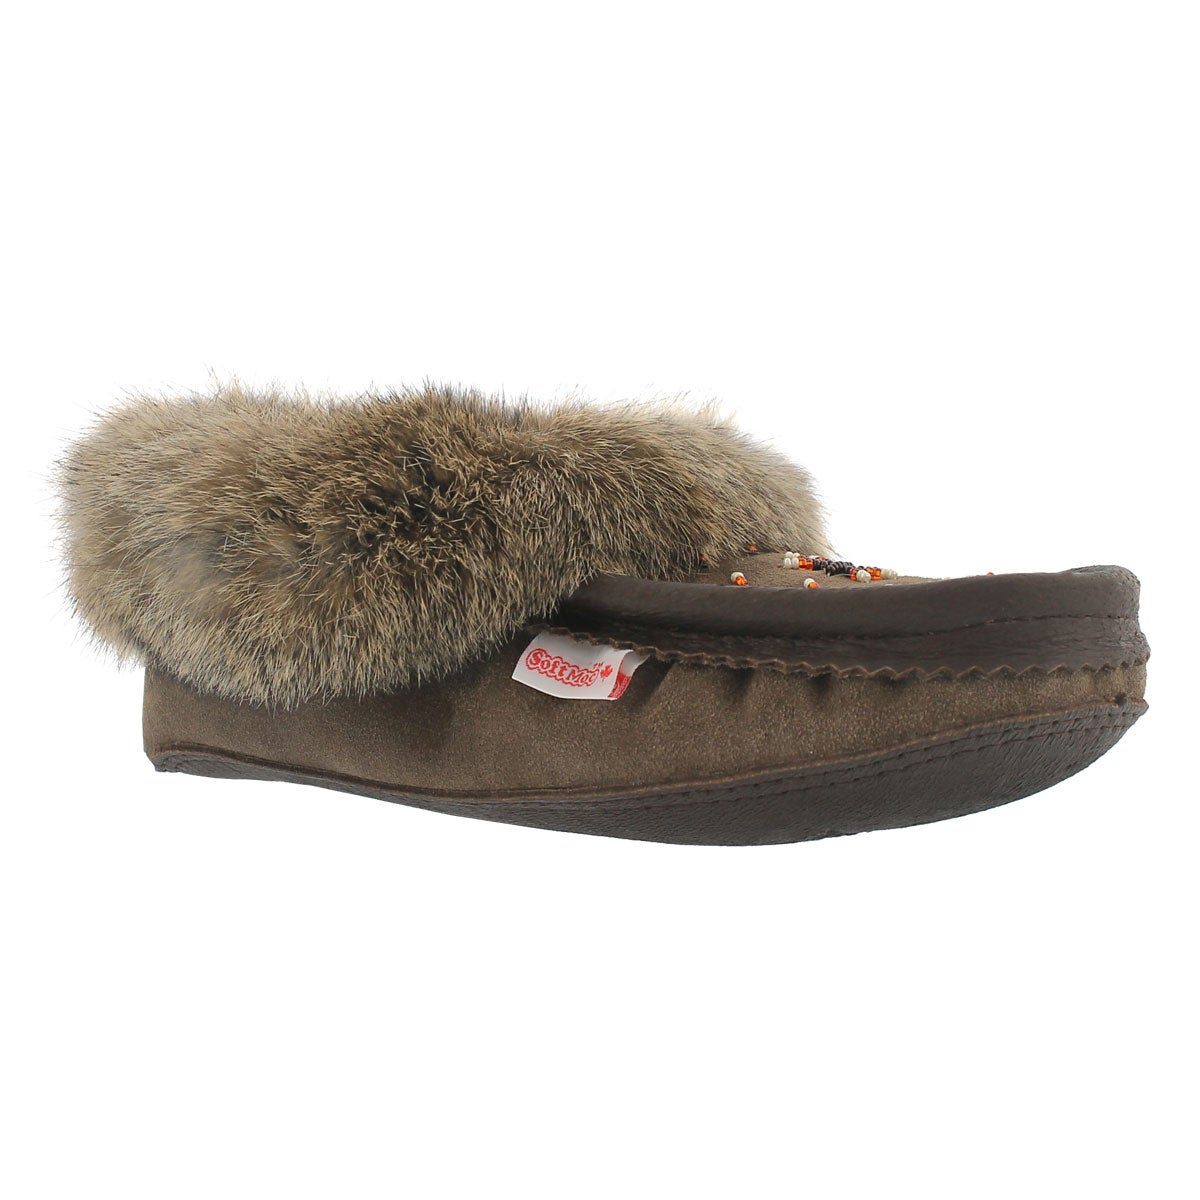 Lds smoke rabbit fur moccasin